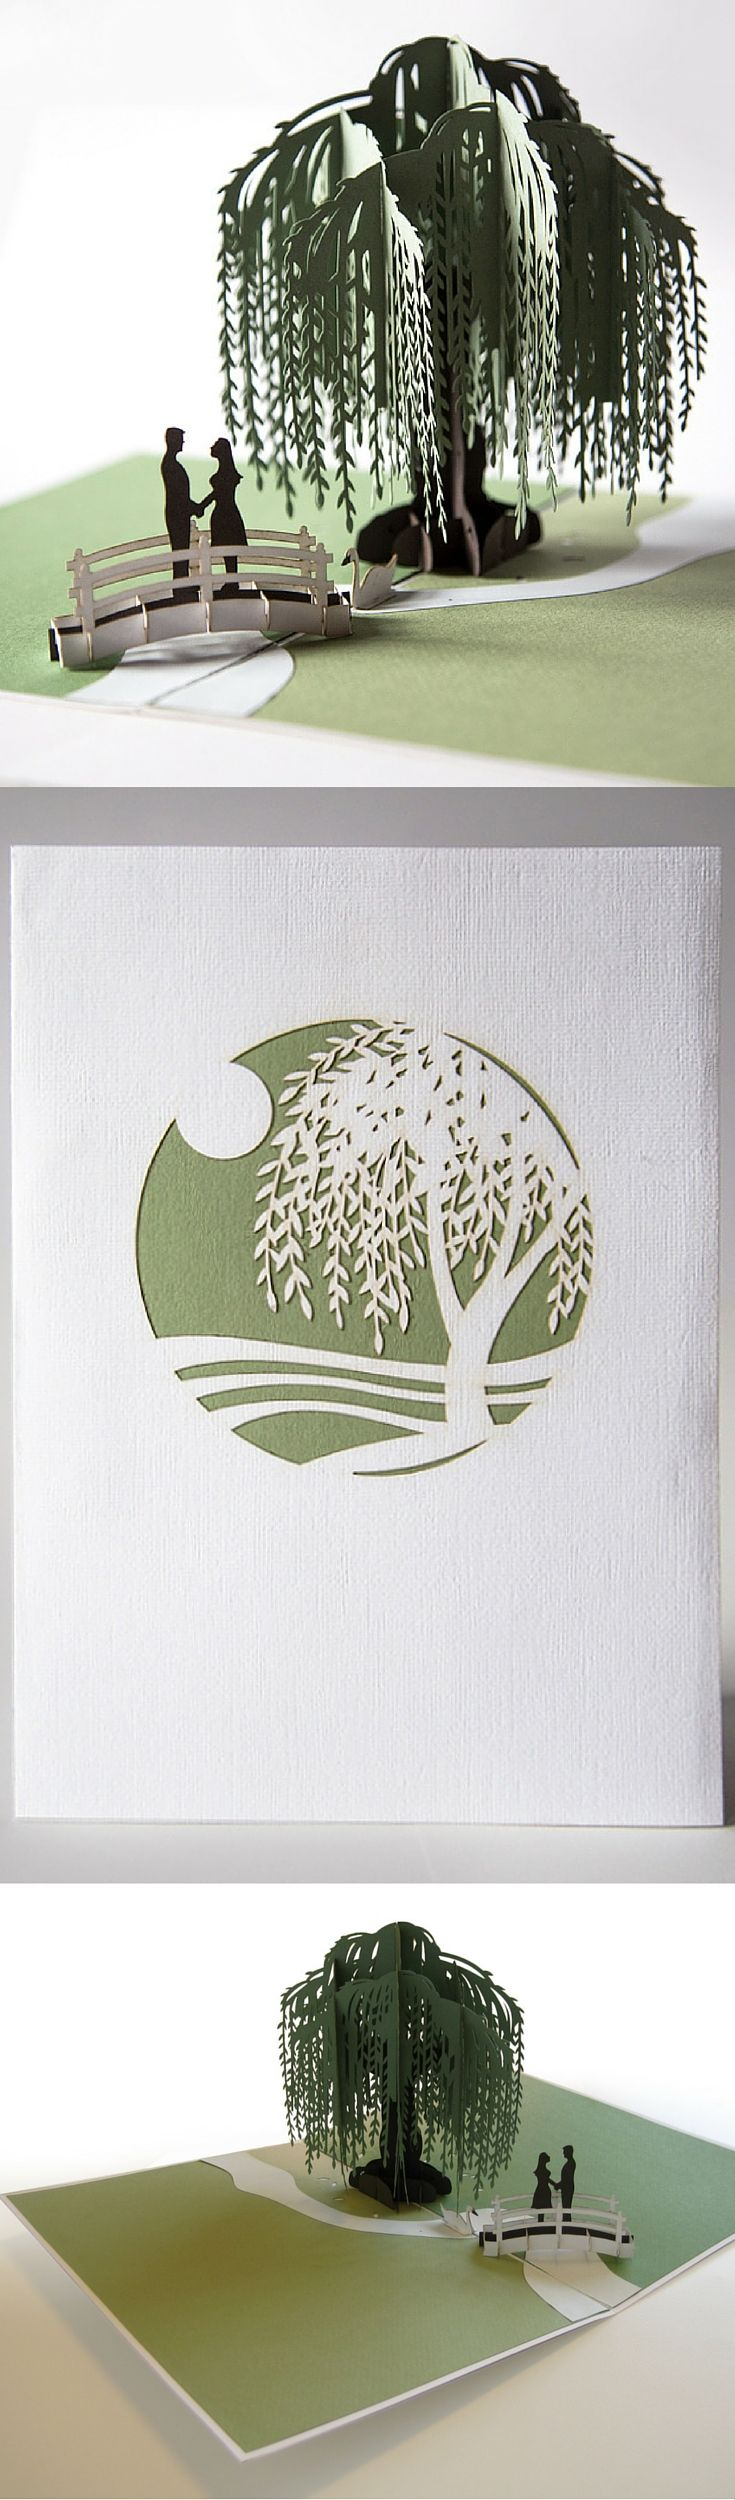 Pop up card of an intimate moment by a willow tree.